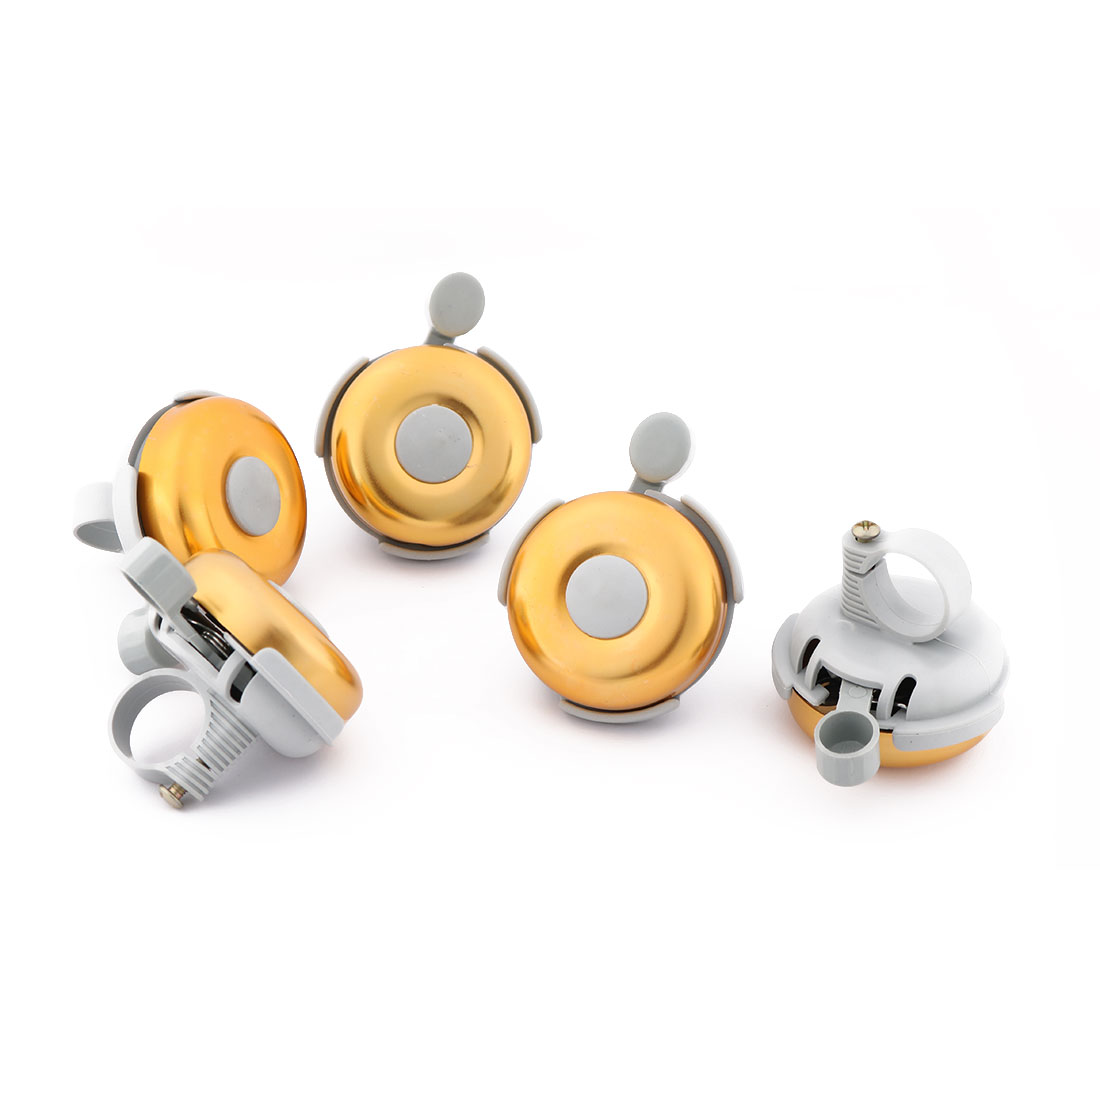 Bicycle Plastic Round Shape Handlebar Bell Sound Alarm Ring Gold Tone 5 Pcs